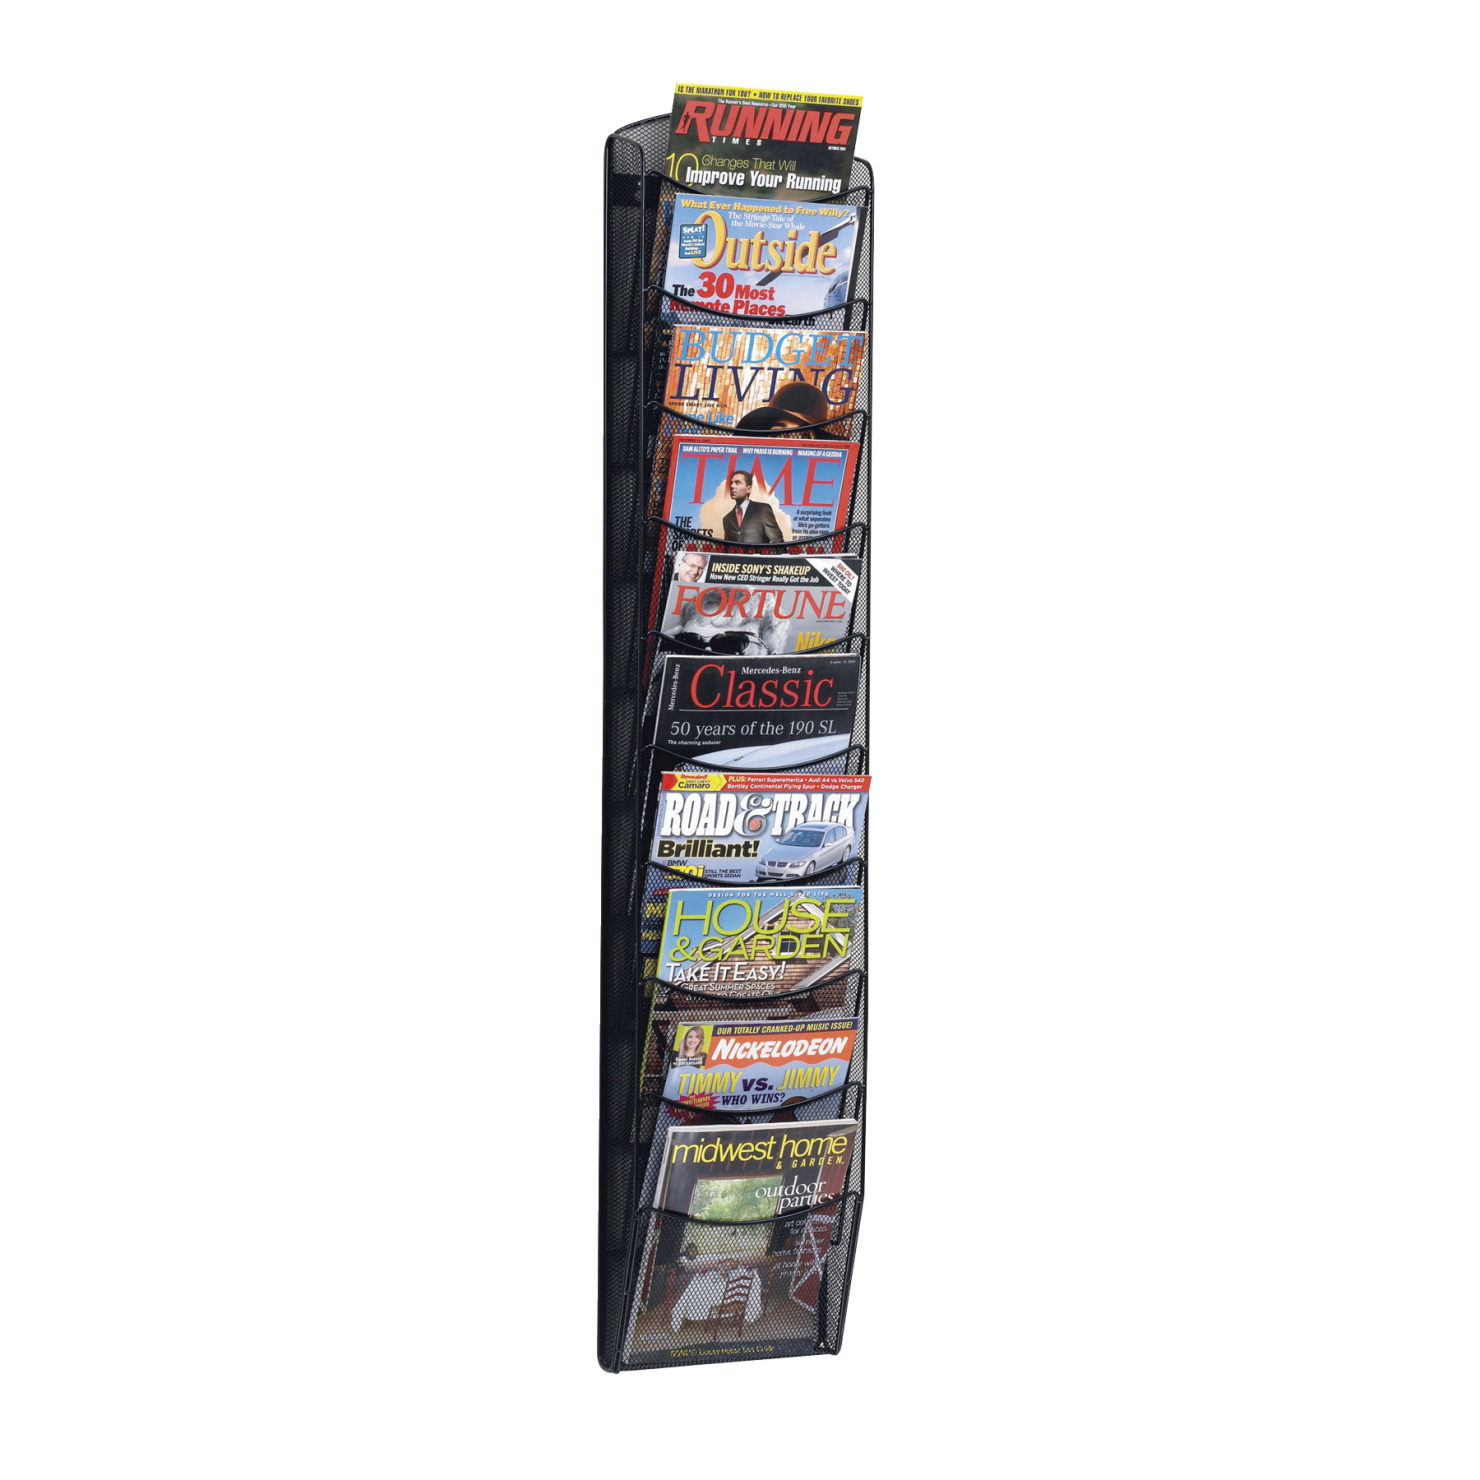 Safco Onyx Mesh Literature Organizer Magazine Rack, 10 Pocket, 10-1/4 W X 3-1/2 D X 50-3/4 H in, Black